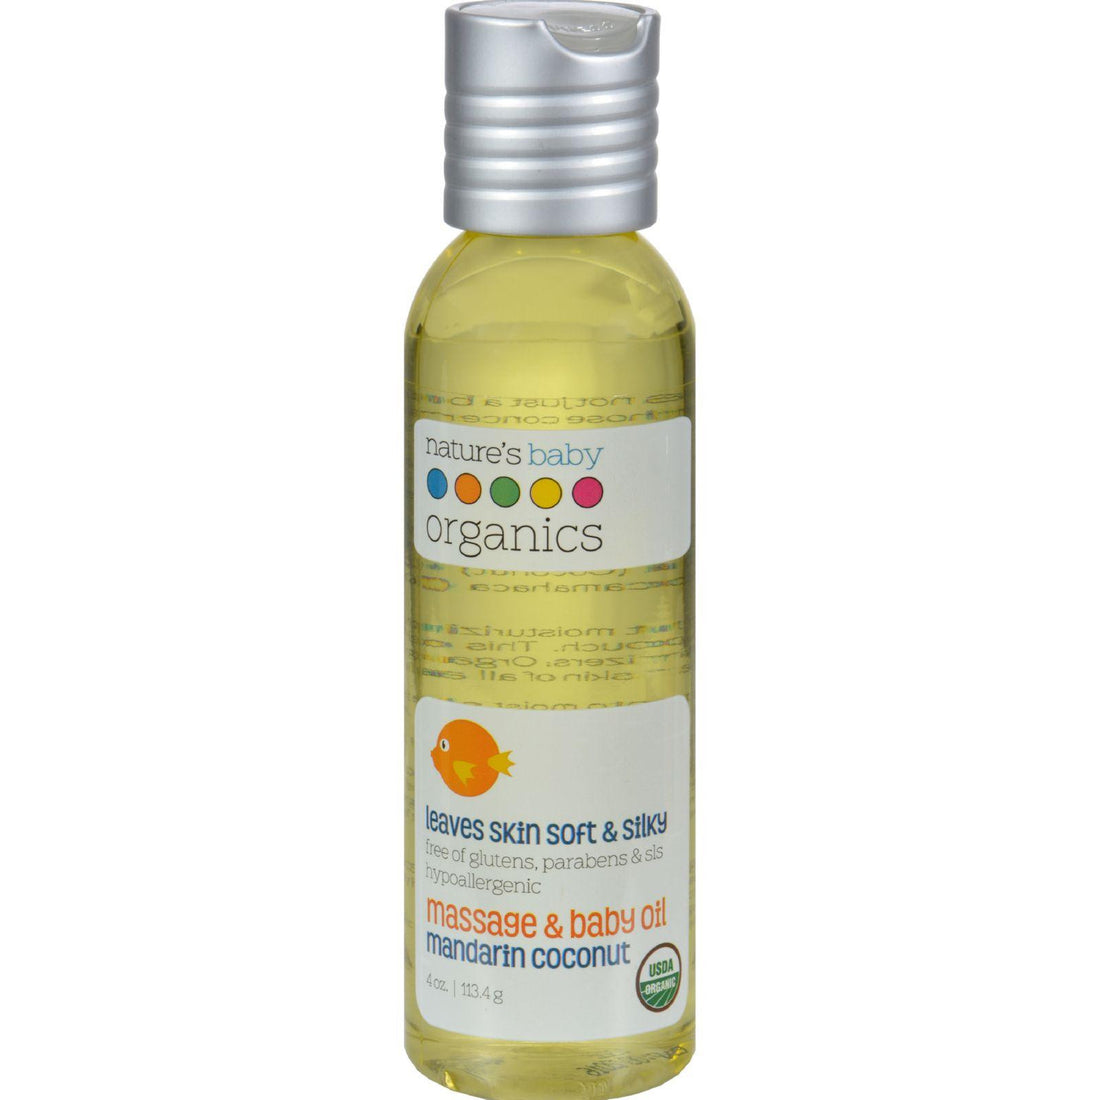 Mother Mantis: Nature's Baby Organics Baby Oil Mandarin Coconut - 4 Fl Oz Nature's Baby Organics